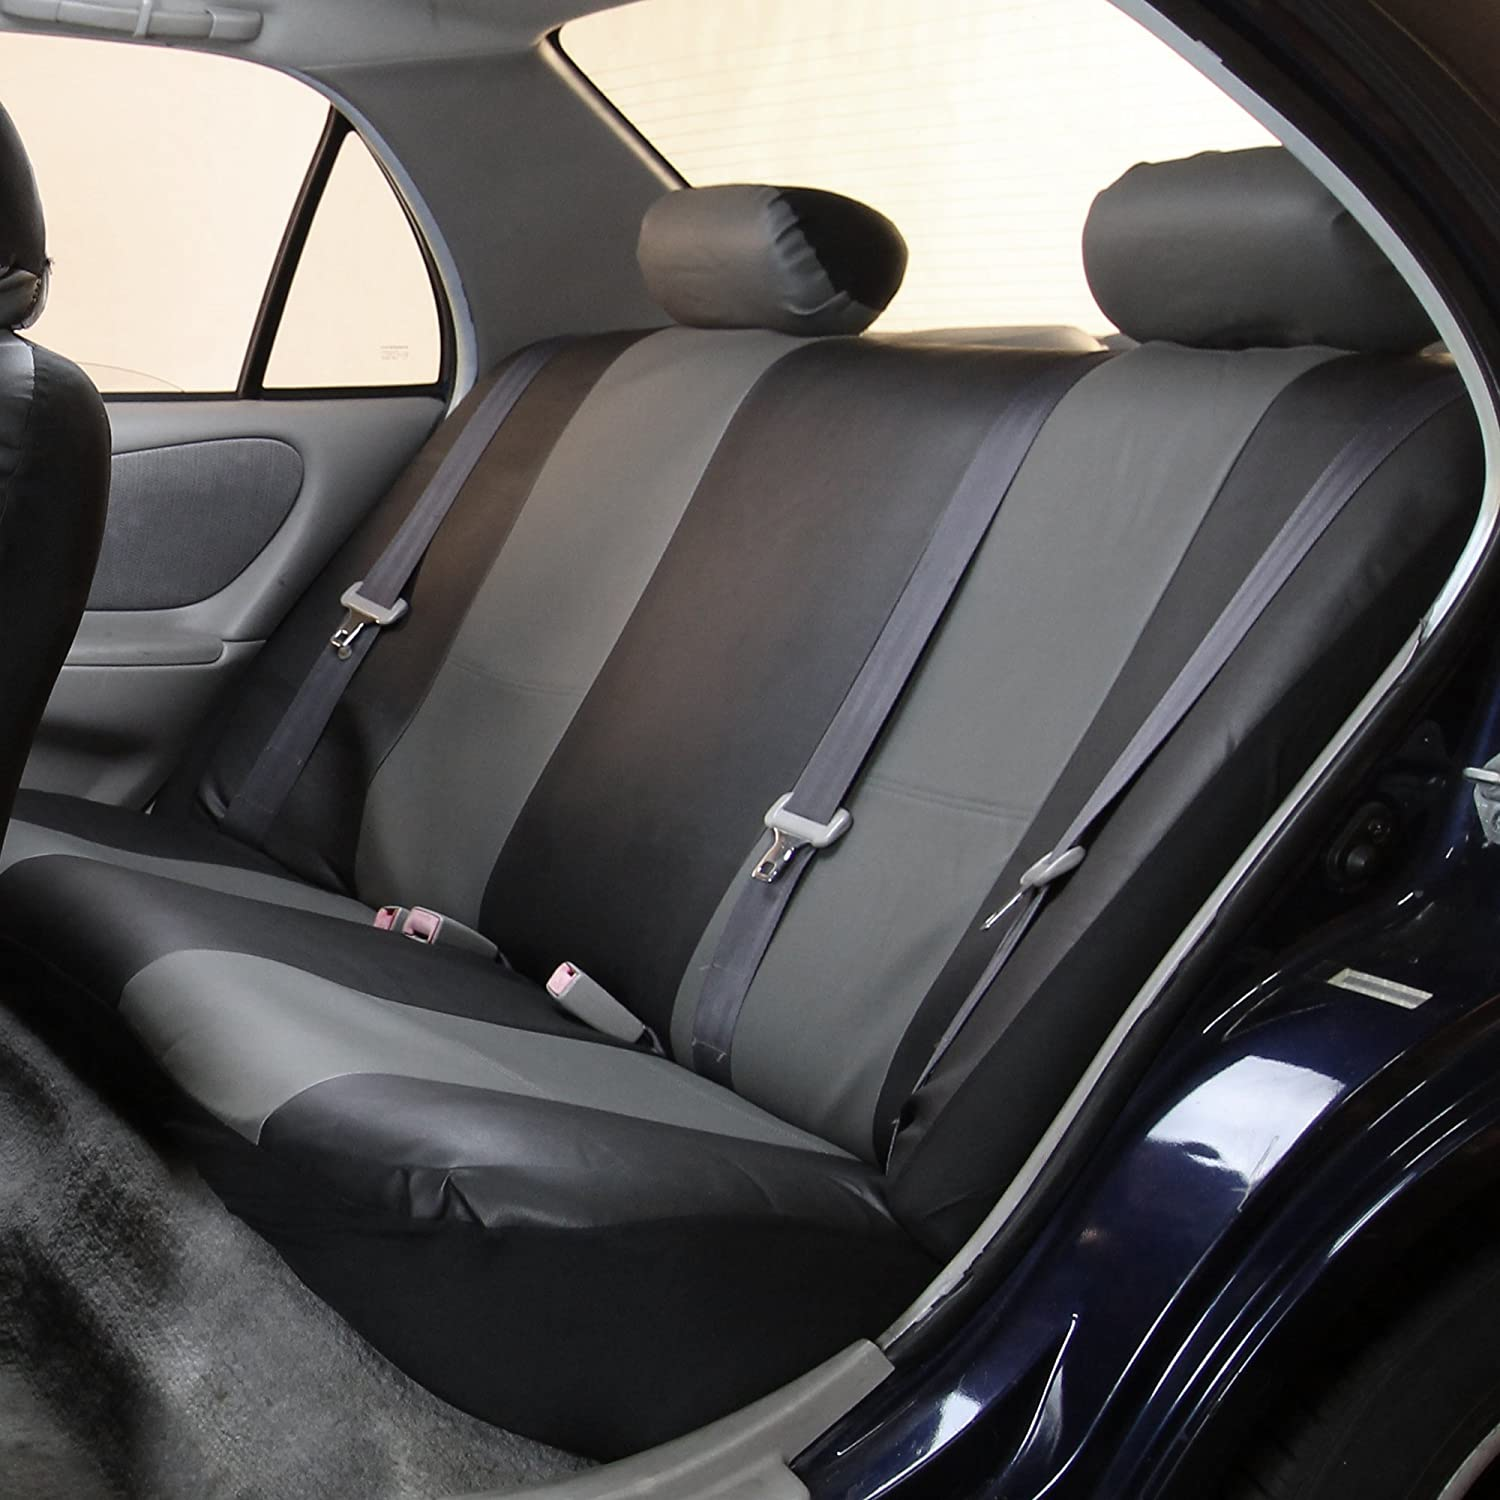 Amazon.com: FH PU001114 PU Leather Car Seat Covers Gray / Black Color:  Automotive